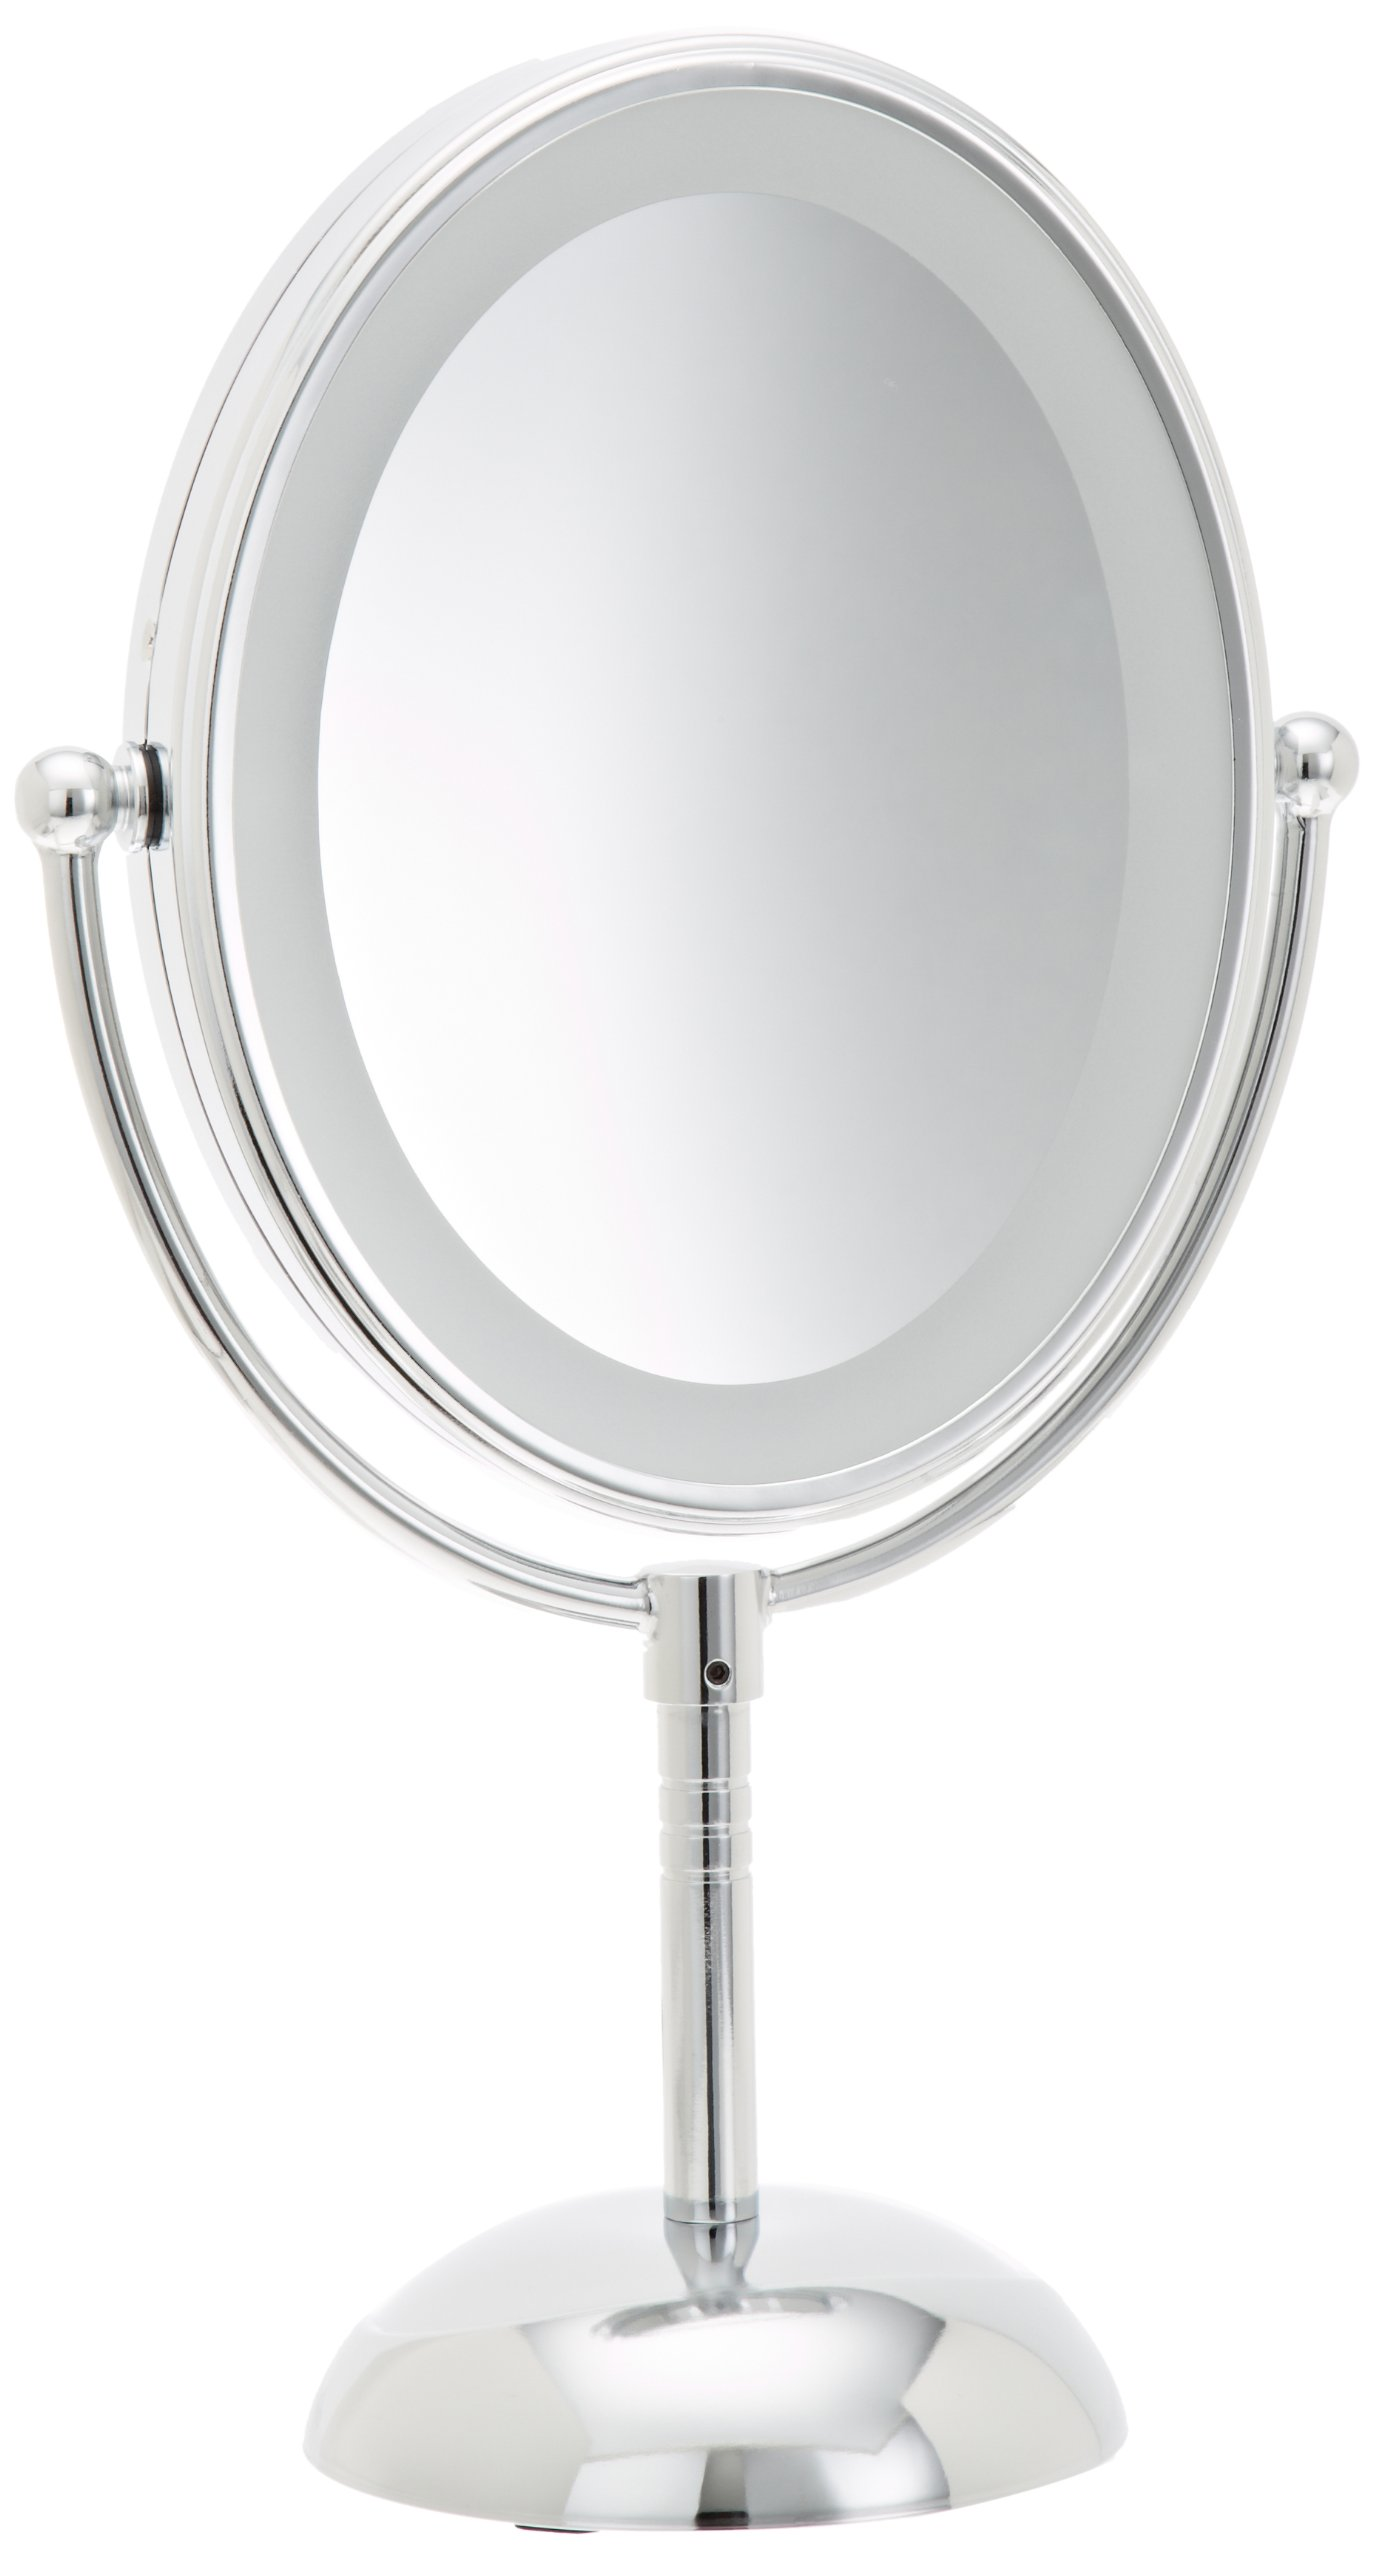 Conair LED Makeup Mirror Reflections Lighted Battery 7x Magnifying Vanity Chrome eBay